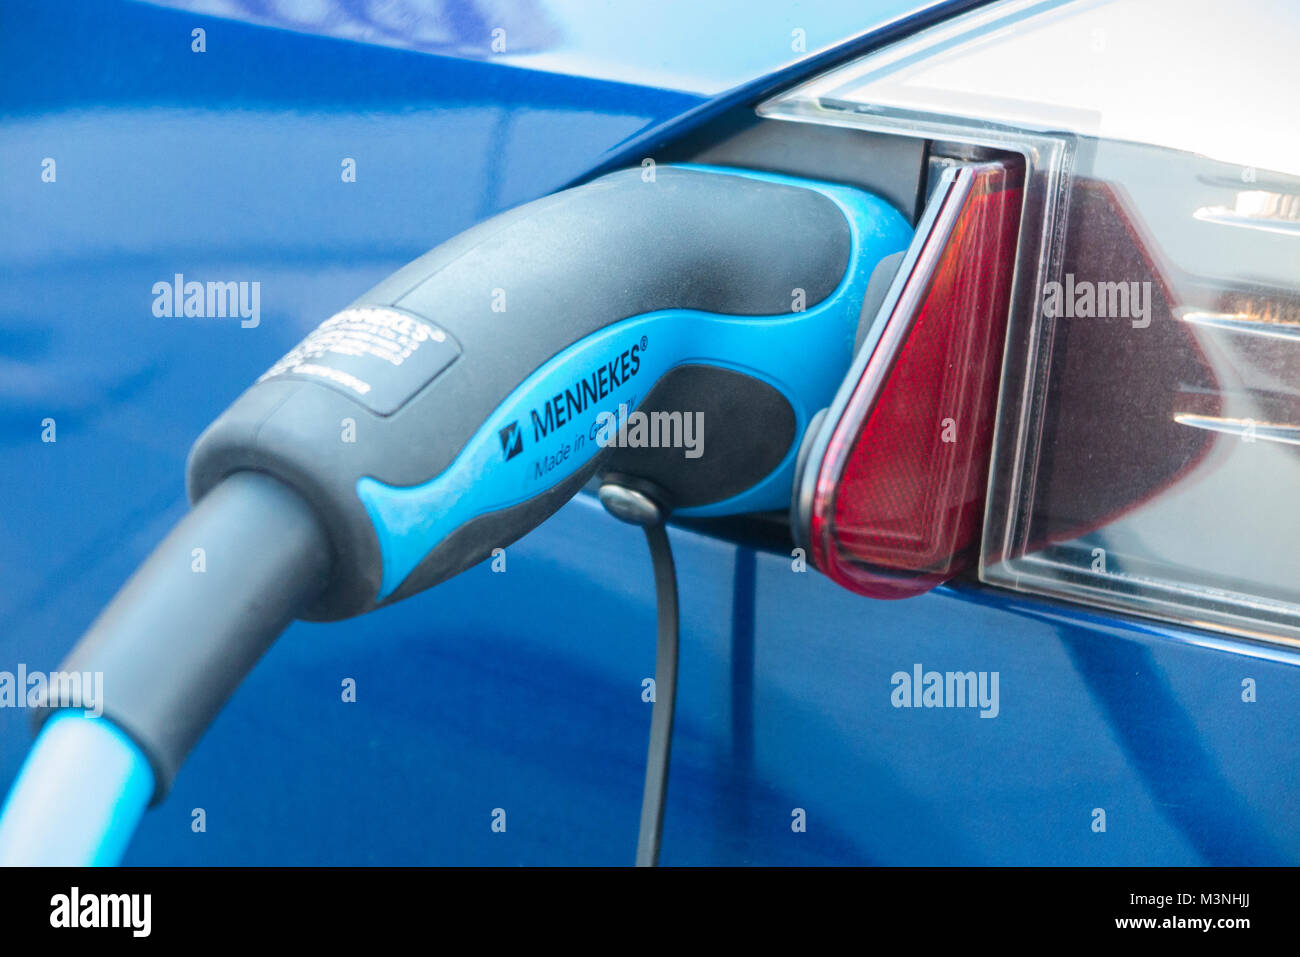 Charging an electric car - Stock Image